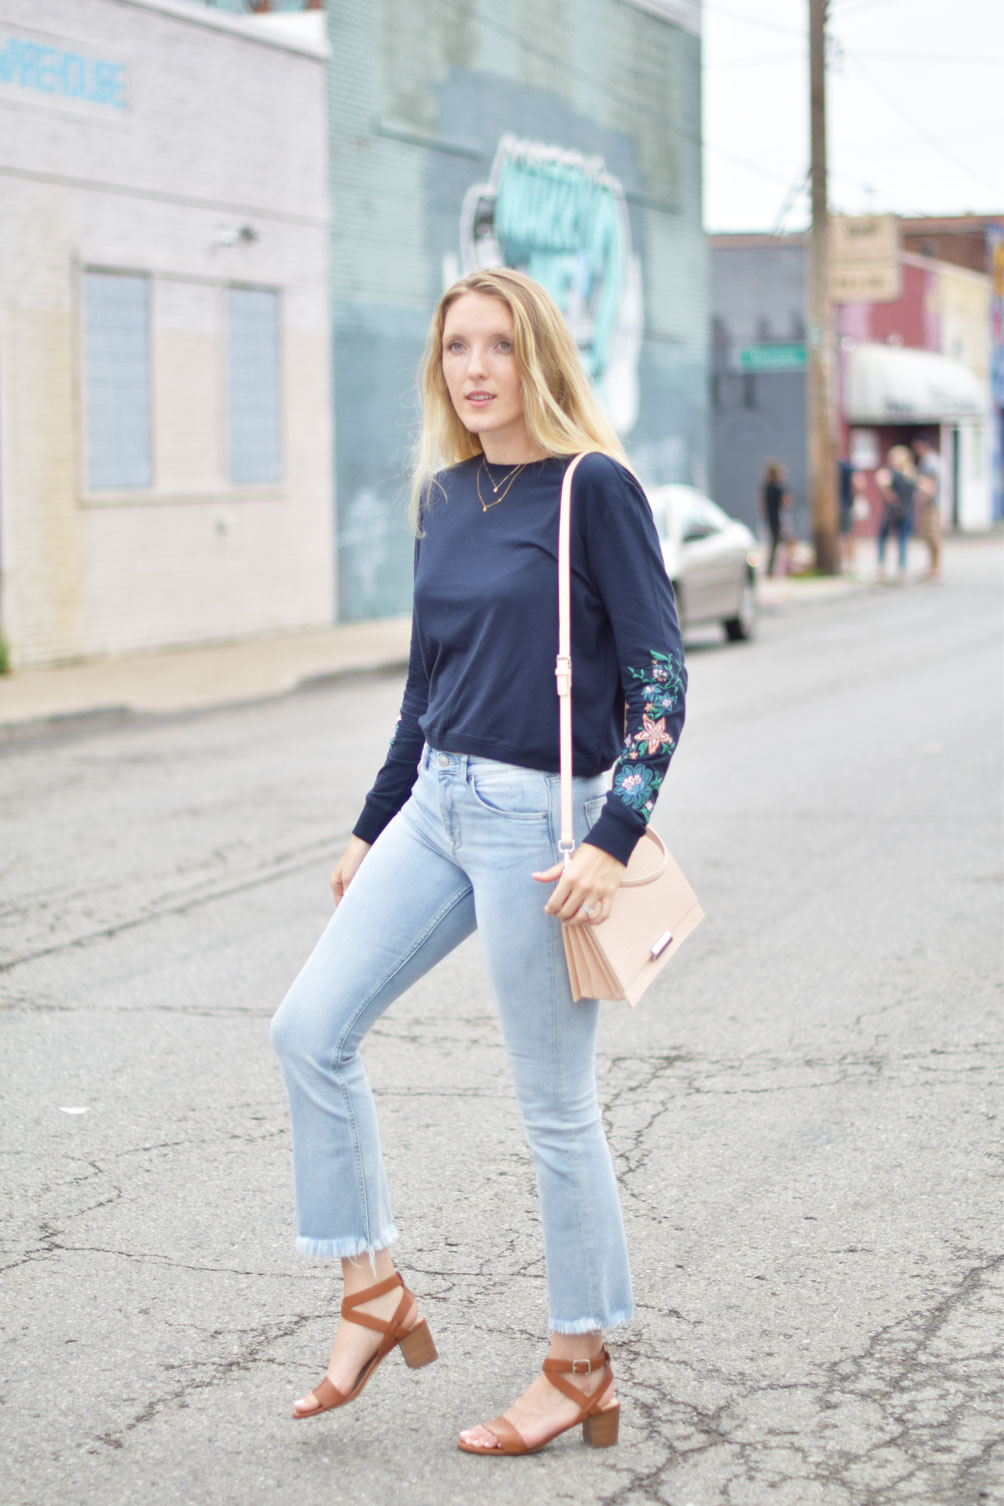 Leslie Musser wears kick flare denim with an embroidered sweatshirt and structured blush purse on one brass fox